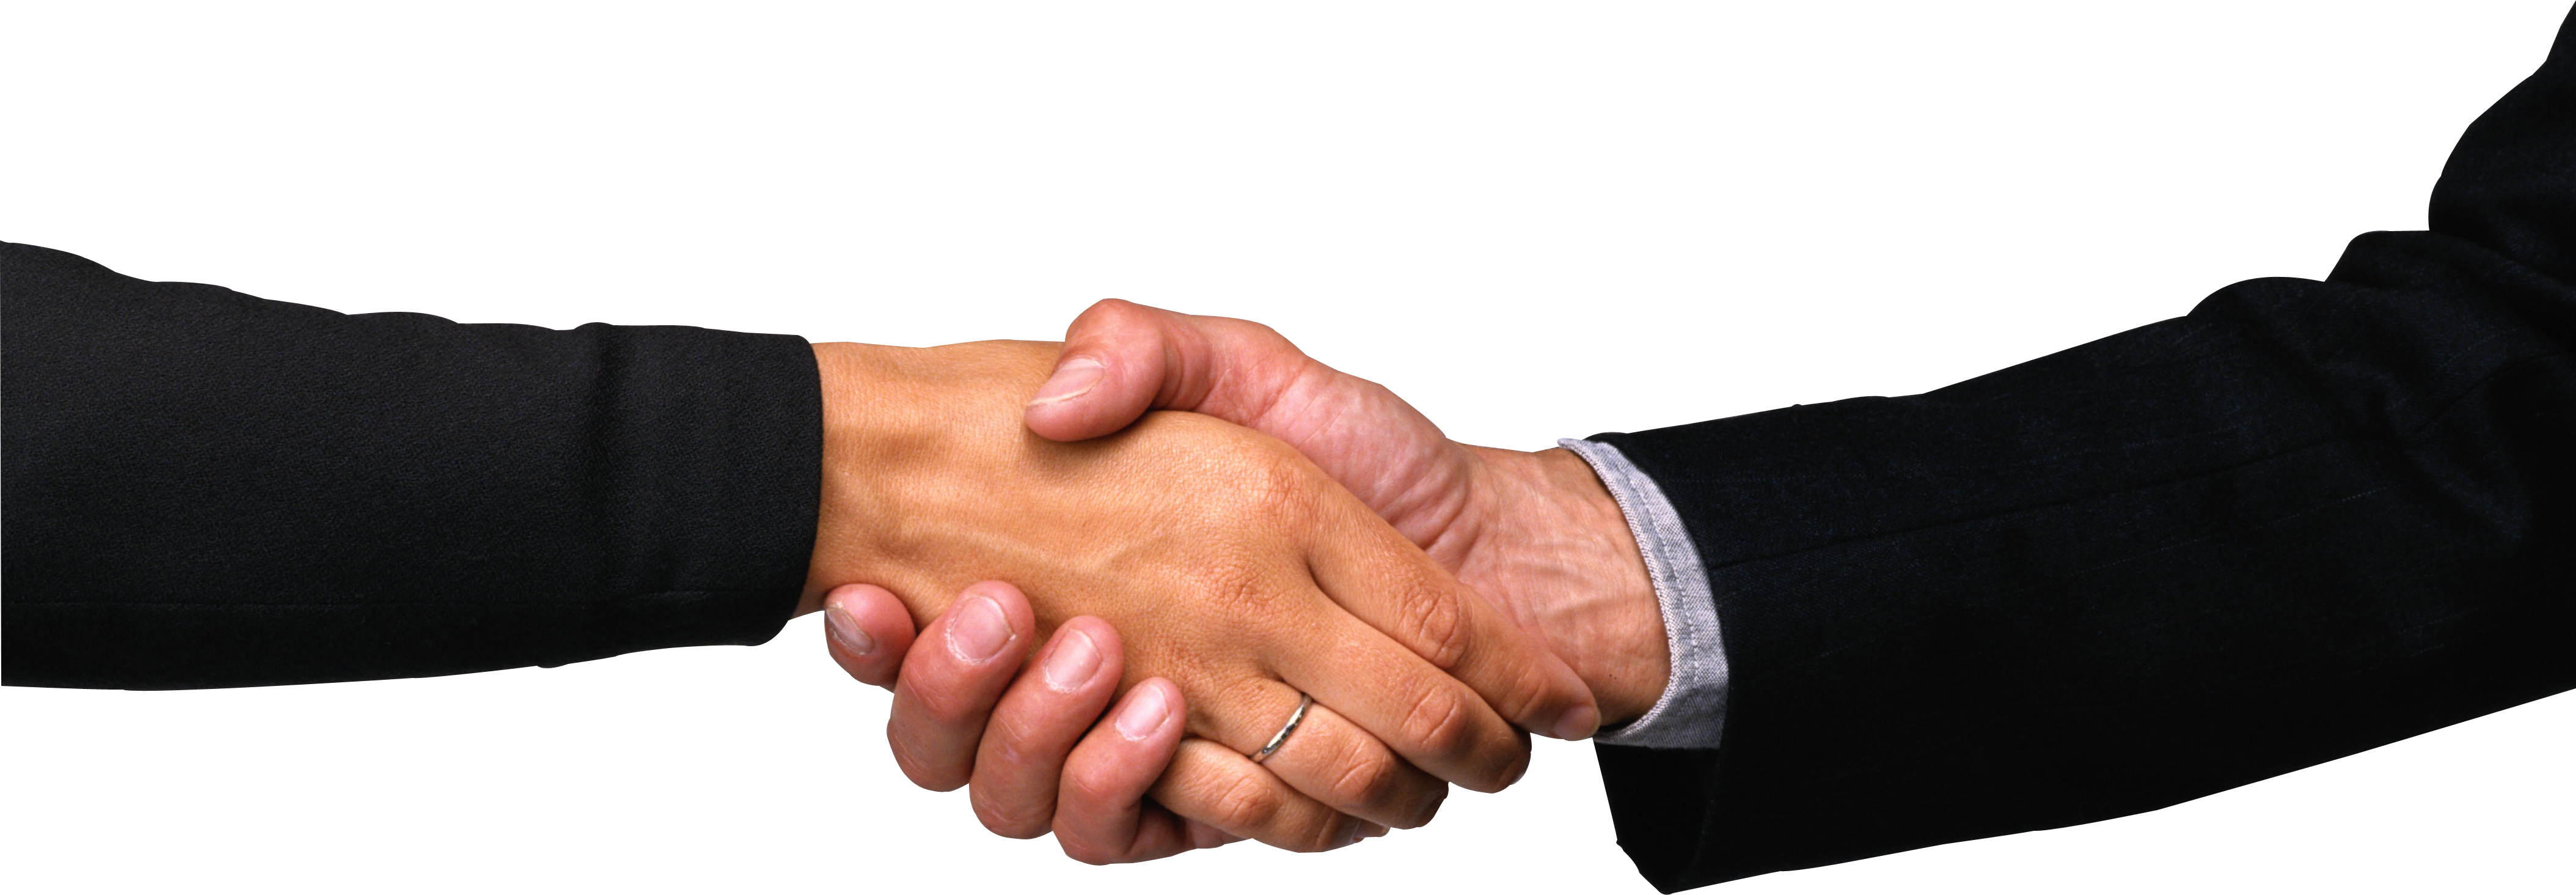 Hand shake png. People shaking hands hd